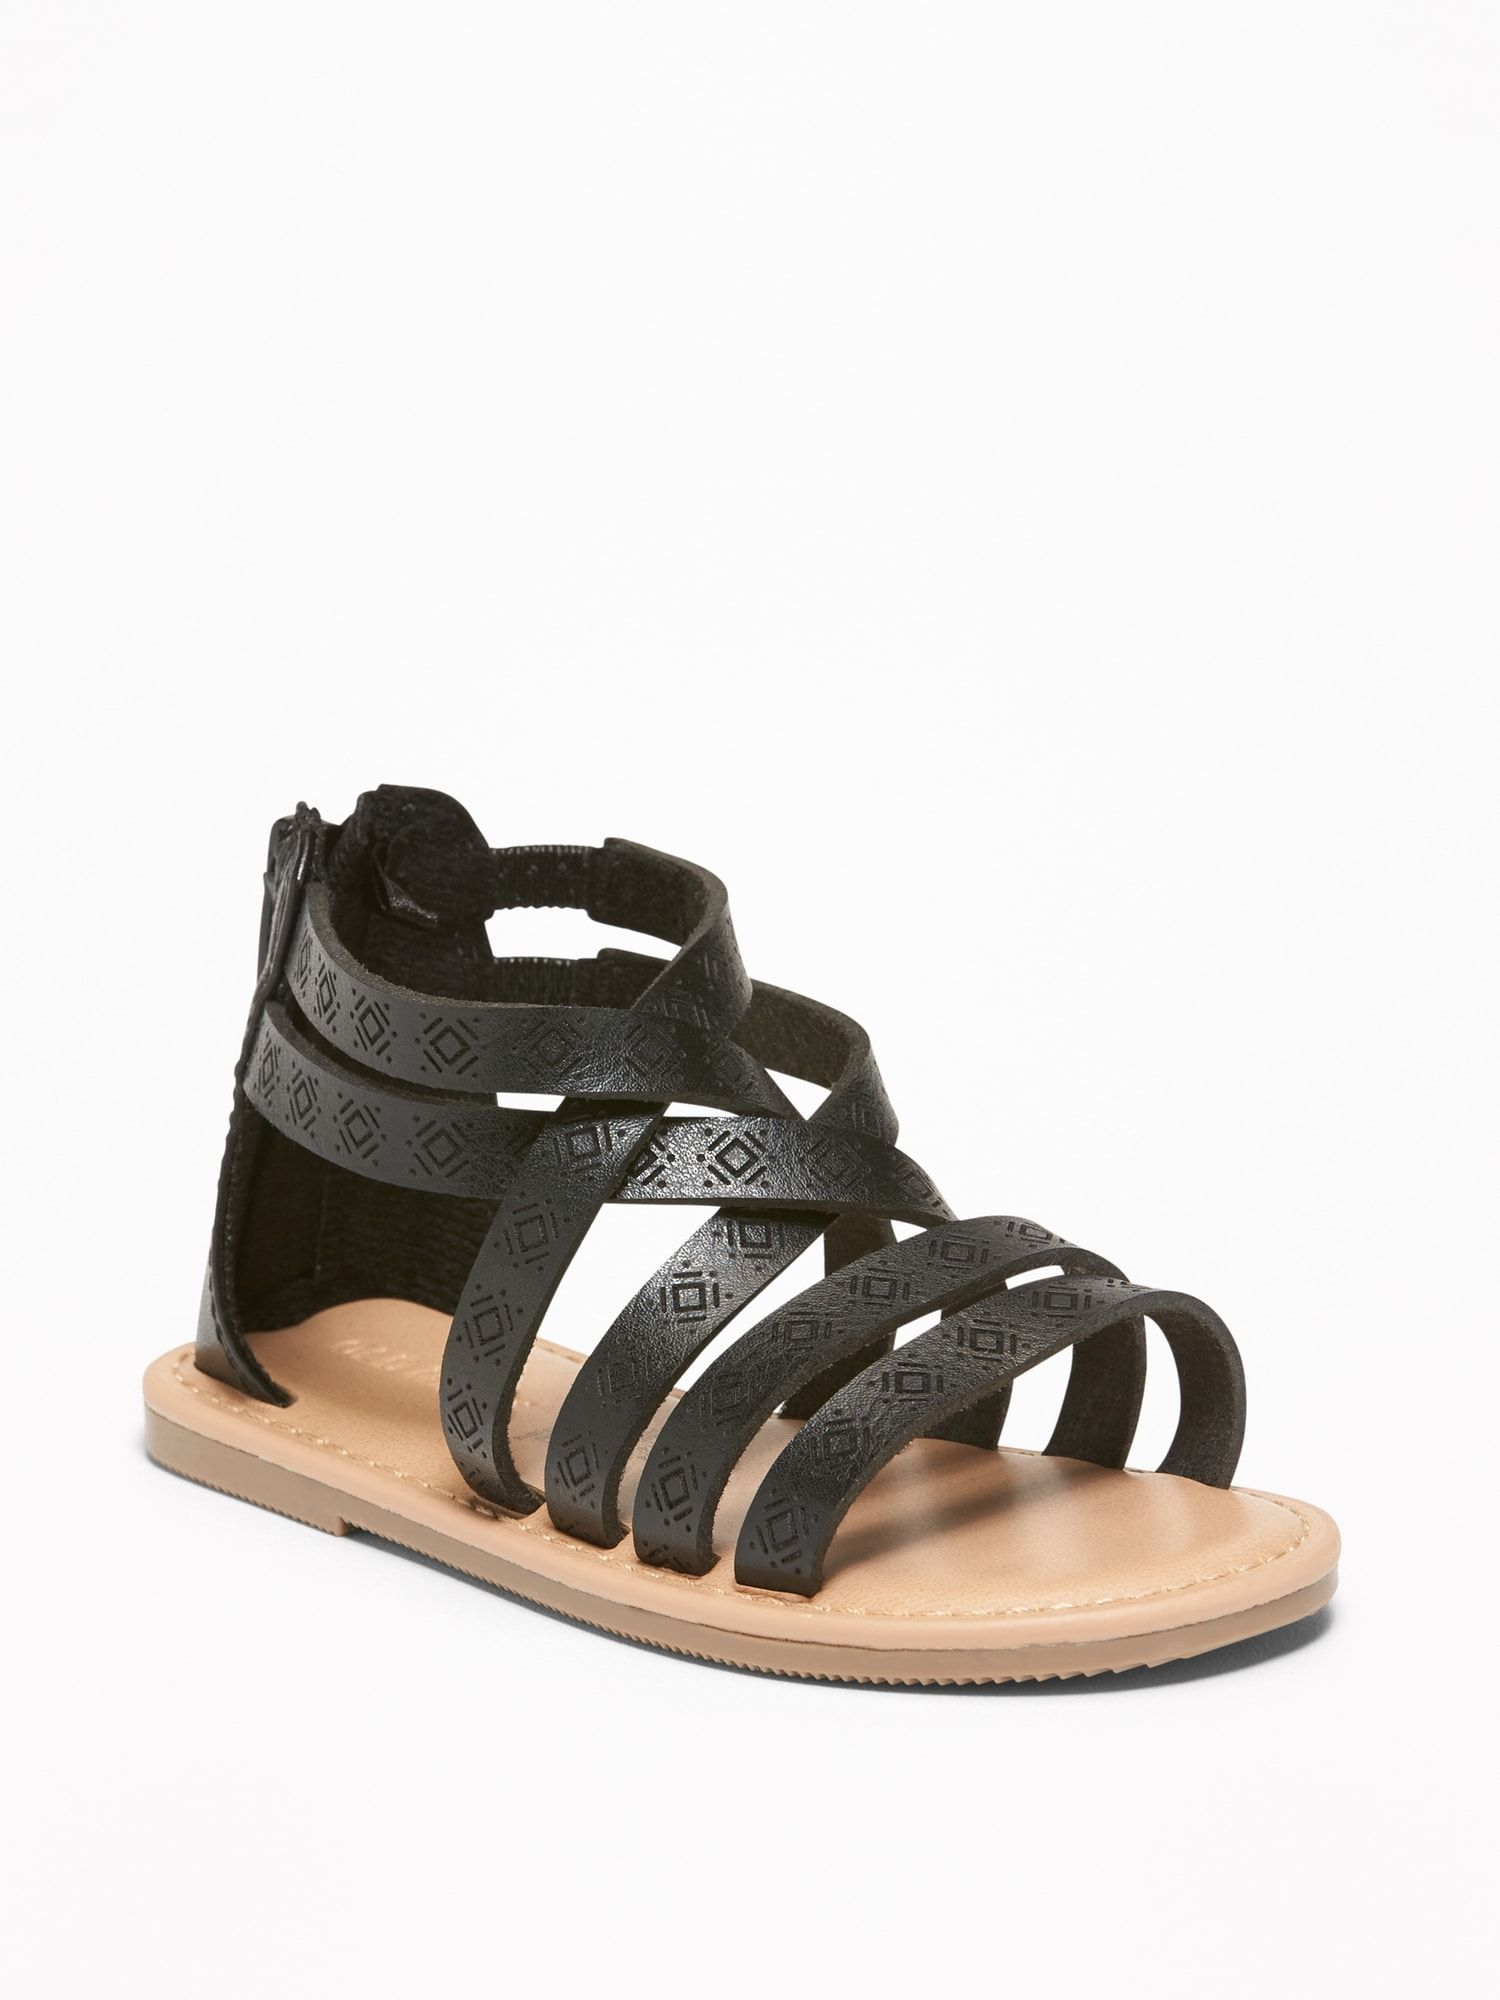 a72d085a277 Embossed Faux-Leather Gladiator Sandals for Toddler Girls in 2019 ...